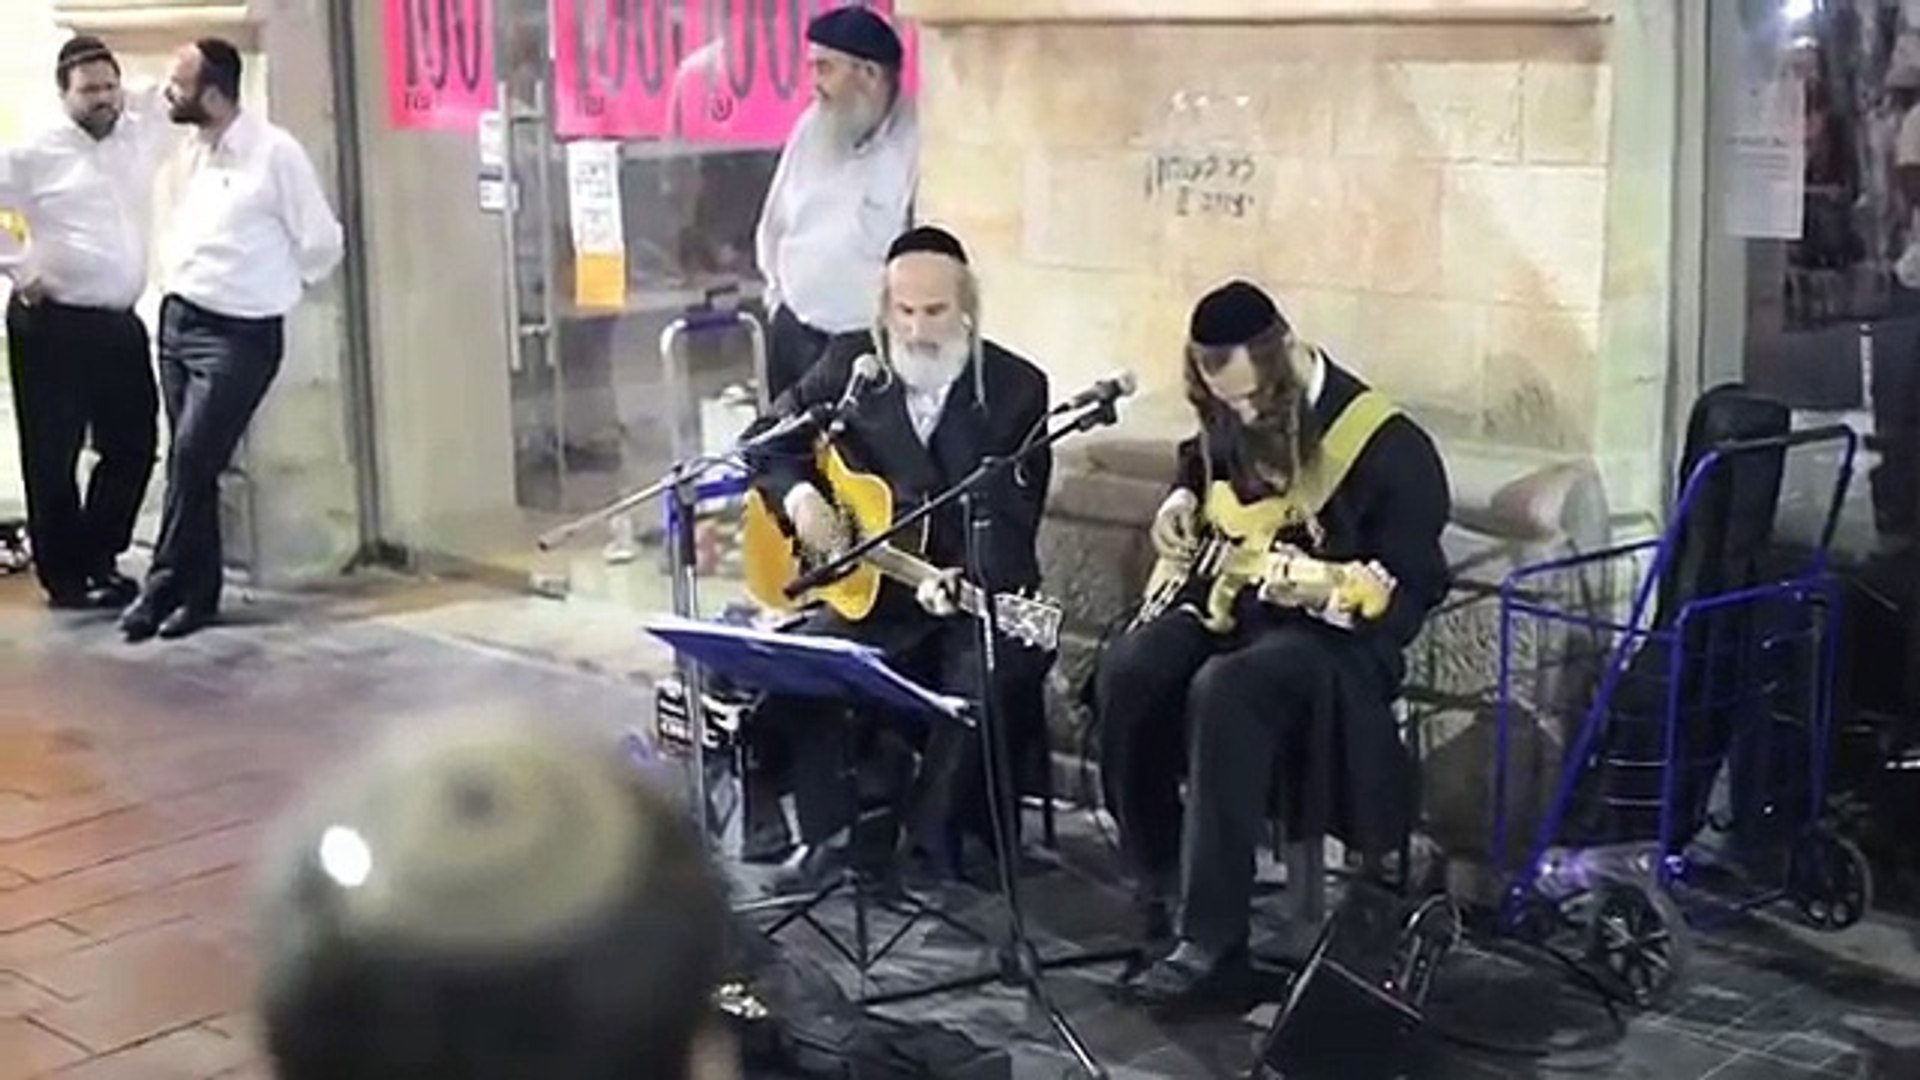 Jewish Musicians singing The Eagles'